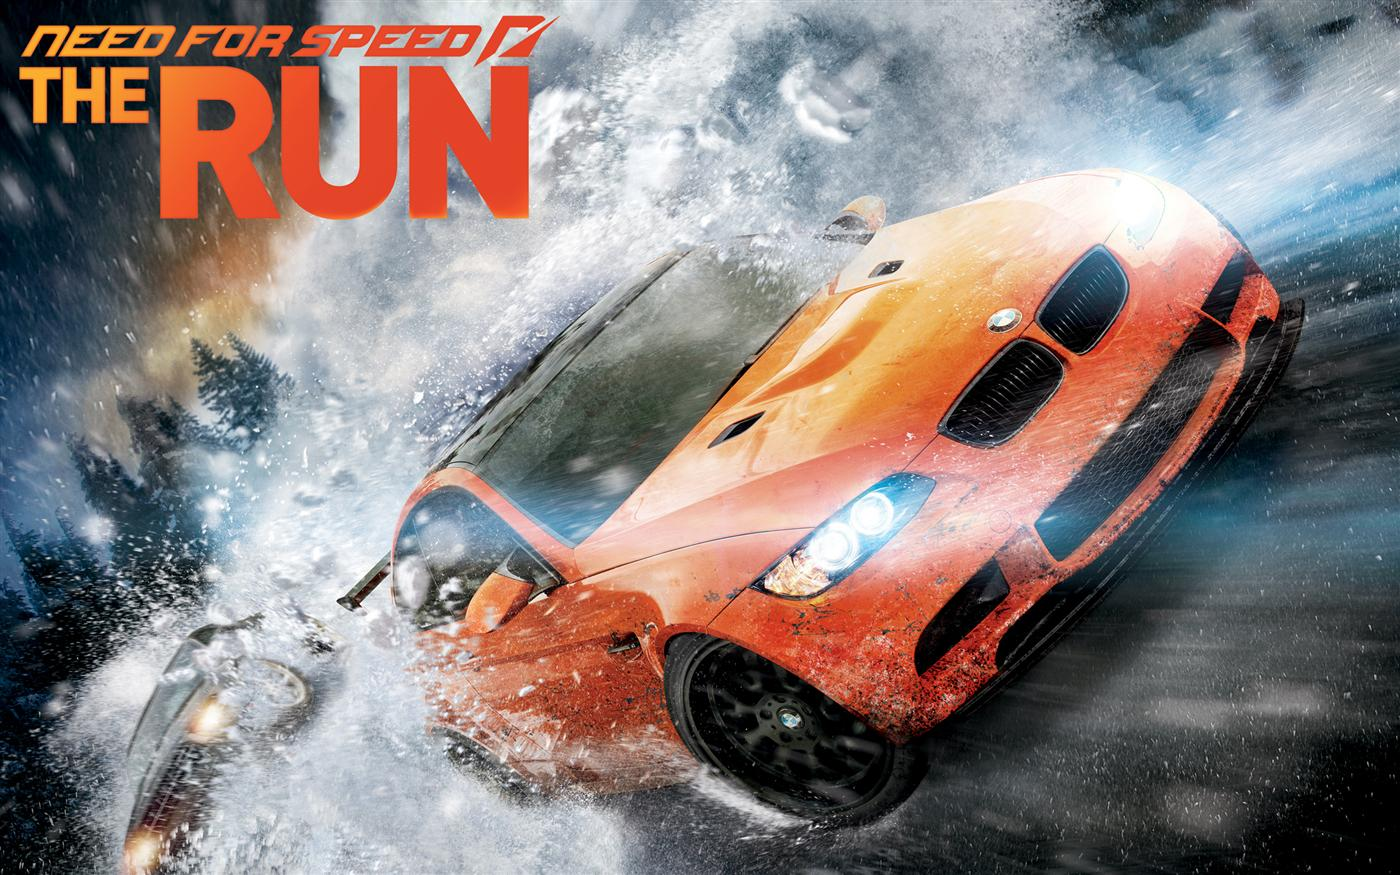 http://3.bp.blogspot.com/-4uAu5QiYqe0/T0MYhg3_UdI/AAAAAAAAAgs/xrwuiaHXNJo/s1600/nfs_the_run_game.jpg